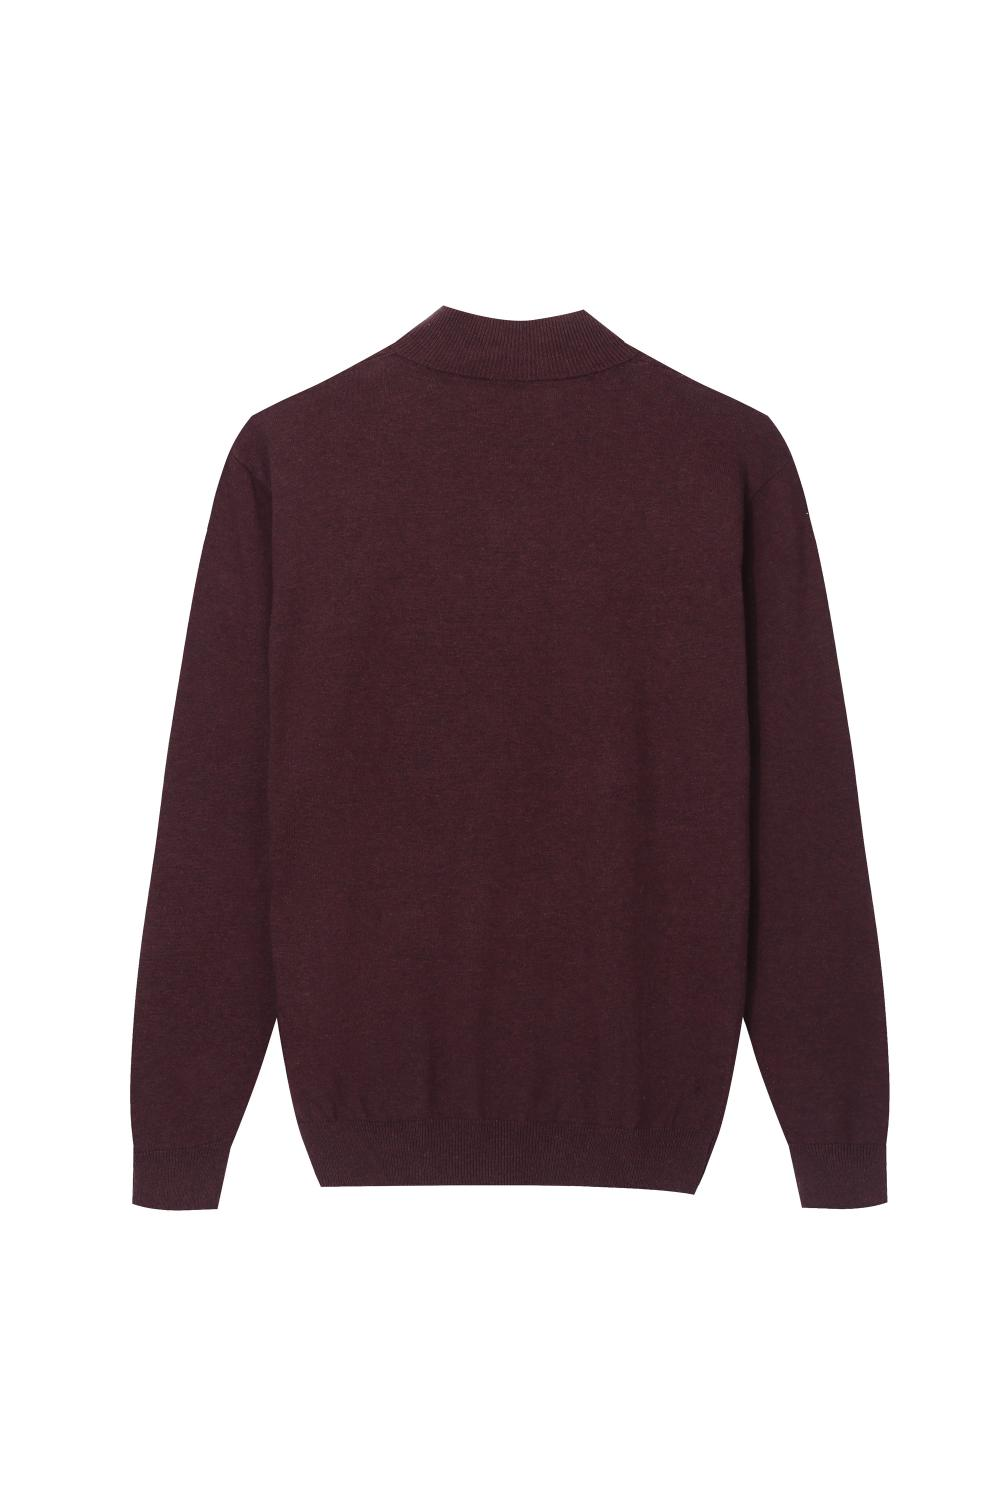 Men's Knitted Quarter Zip Mock-neck Pullover